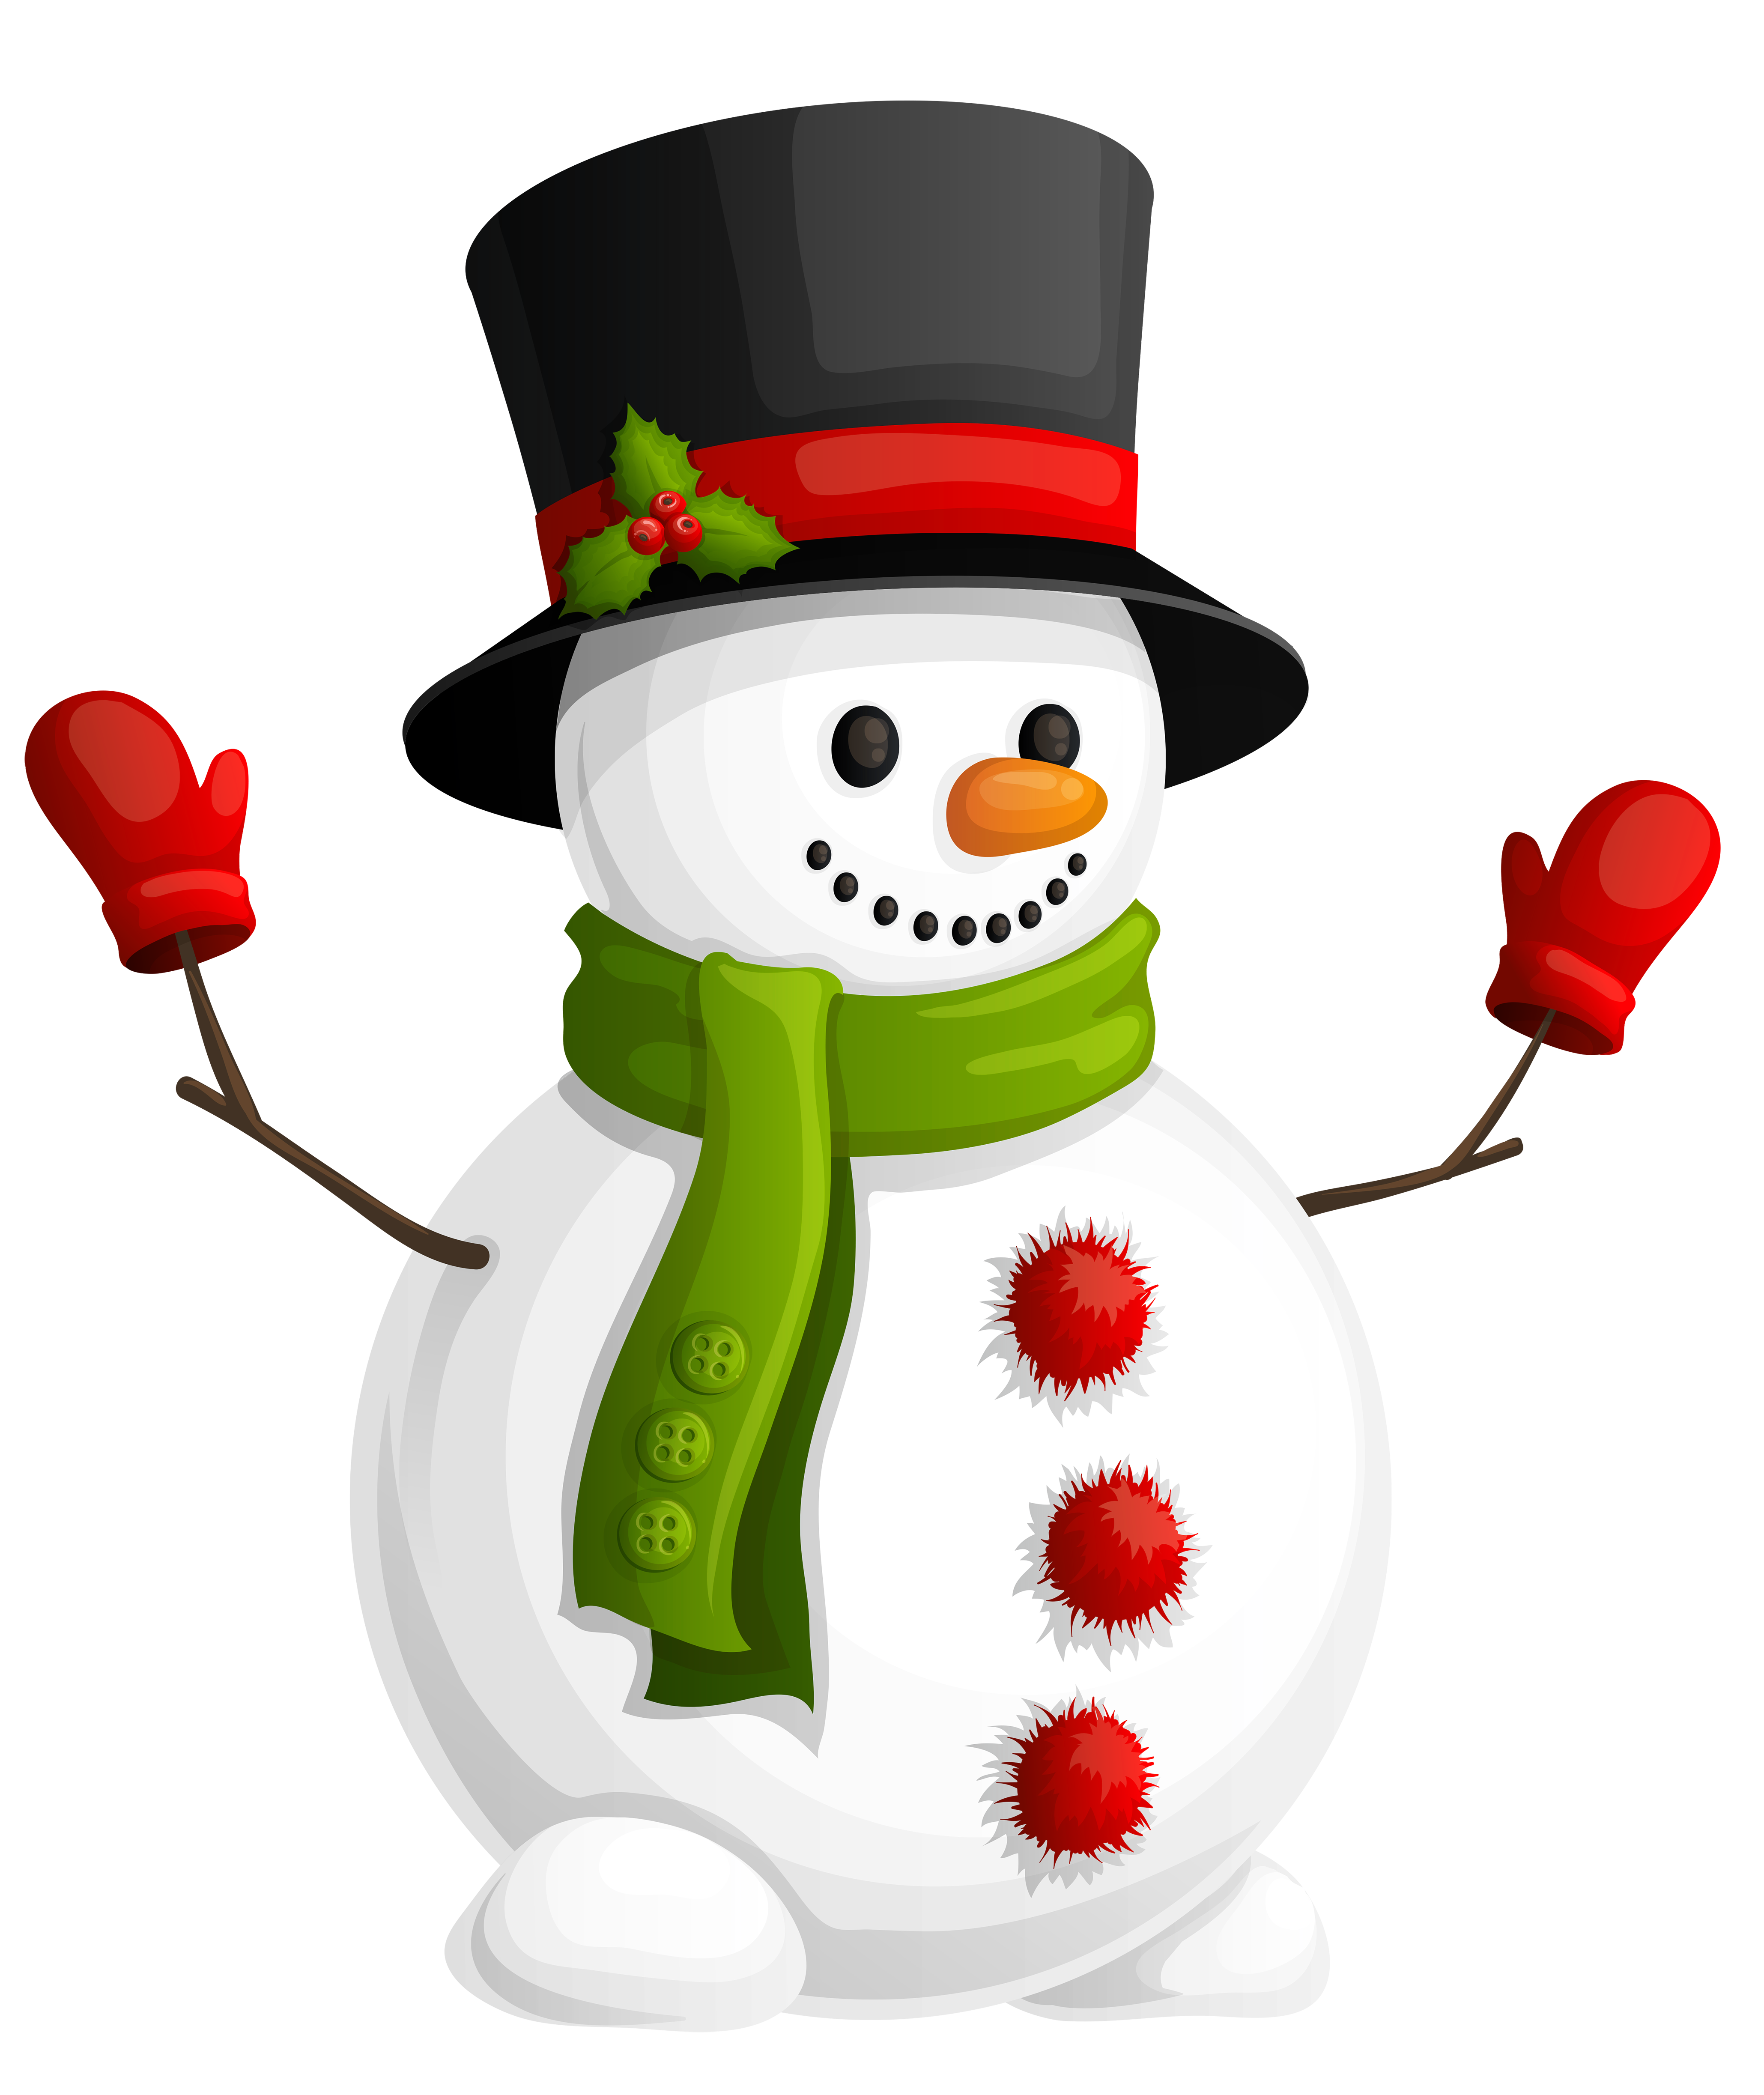 Snowman clipart in sun freeuse stock Transparent Snowman with Green Scarf Clipart | Gallery Yopriceville ... freeuse stock